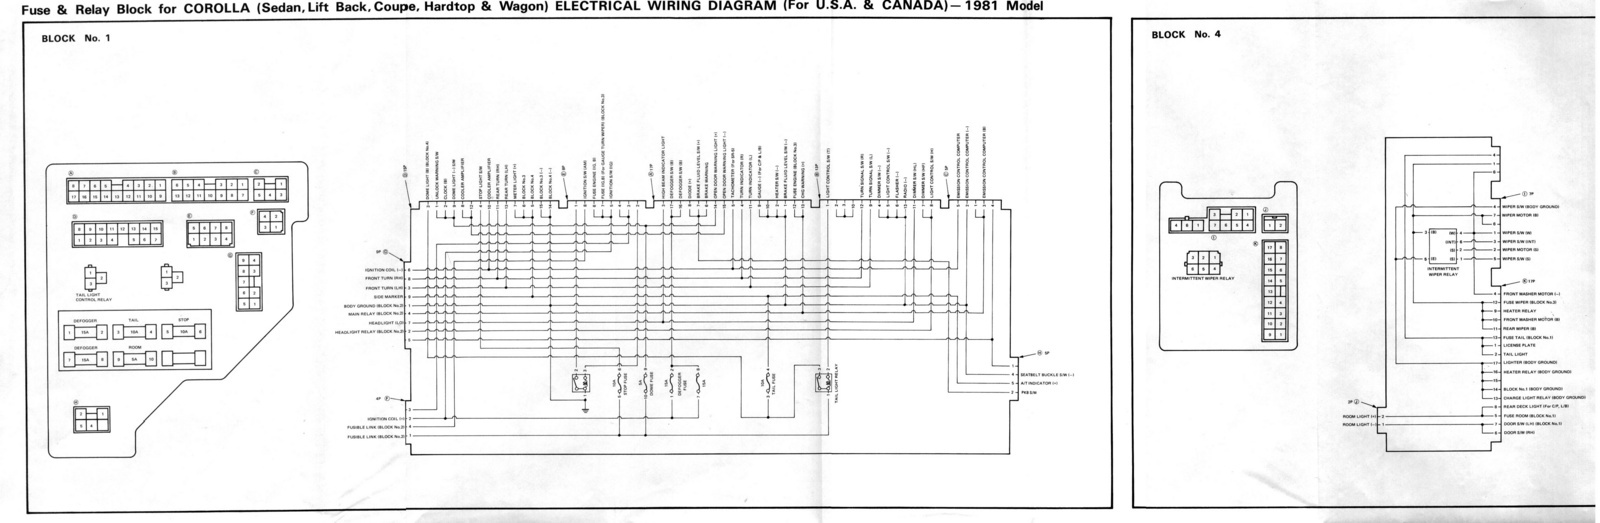 82 Corolla Wiring Diagram Most Uptodate Info 89 Toyota Pickup Images Gallery